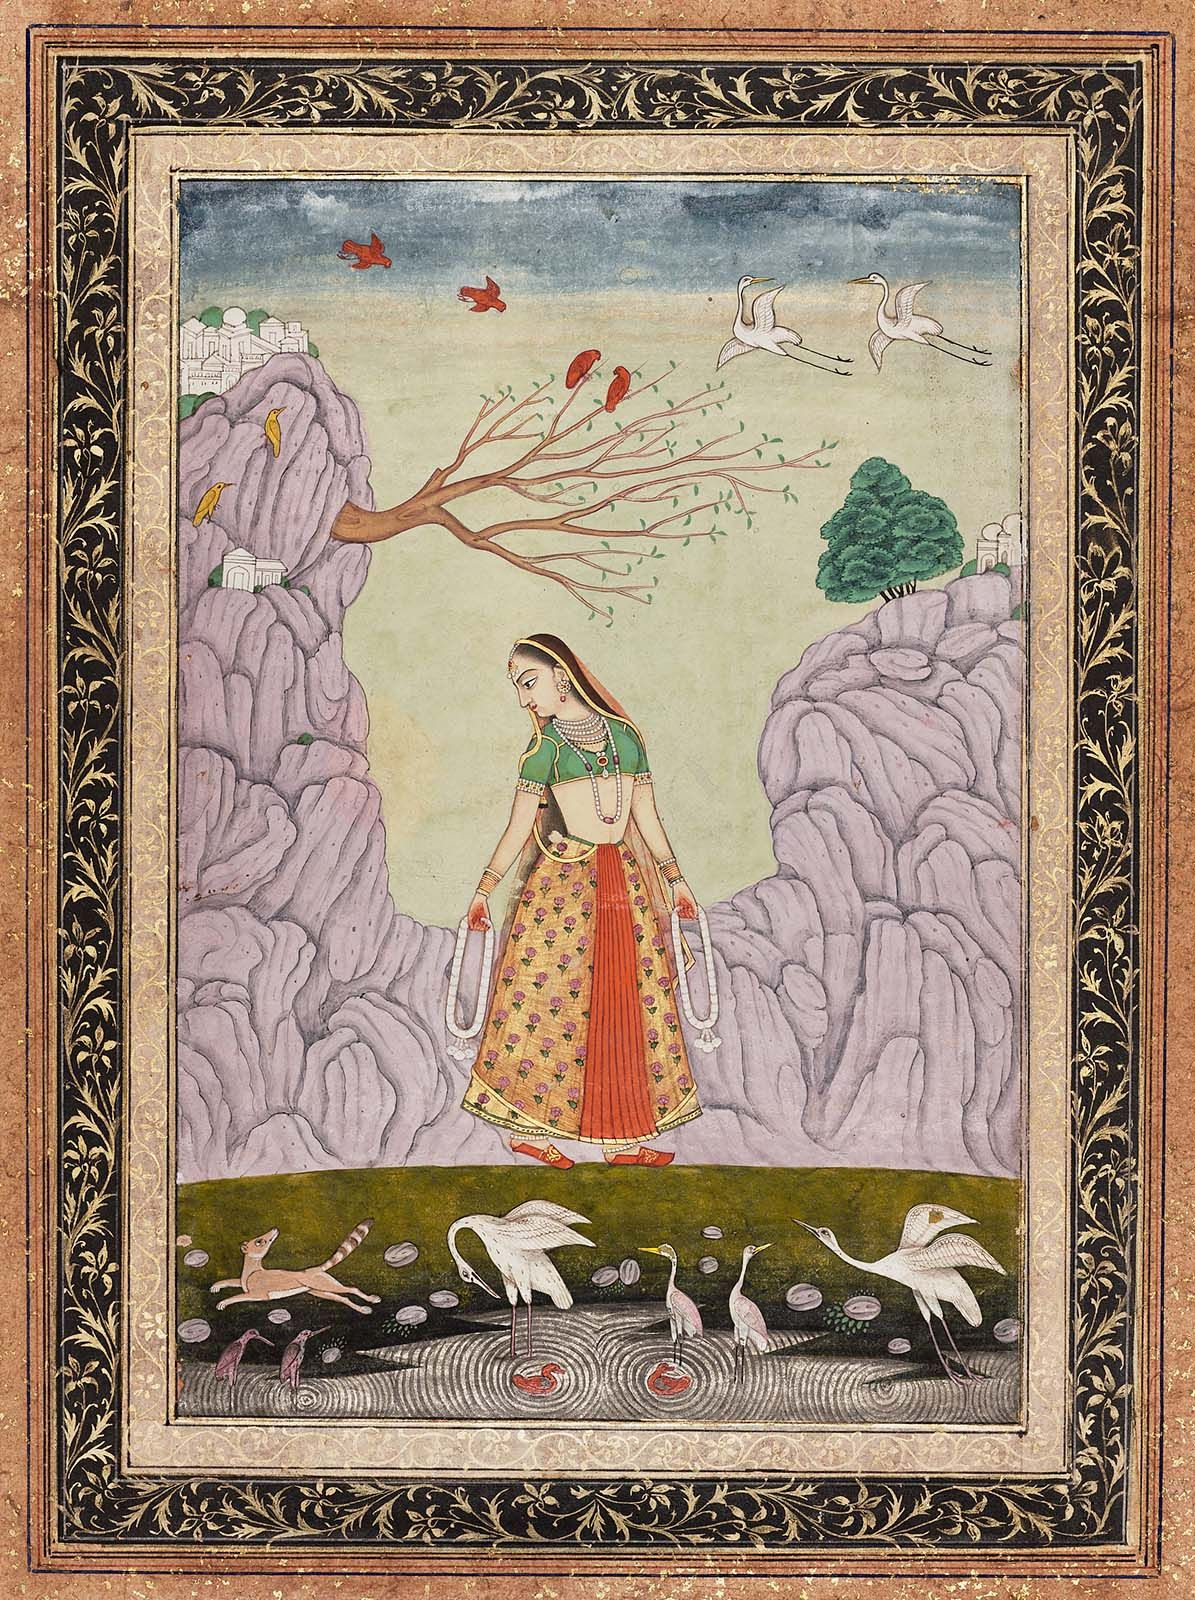 """Kakubha Ragini.    Indian, Deccani,  18th century.   Possibly Hyderabad. On reverse, in English """"no. 22."""" Pal: """"Kakubha is a handsome young woman, suffering lovesickness, leaving her fine palace she enters the forest, ... Again and again she arouses the peacock's scream, forgetting soul and body in a trance upon her lord."""""""